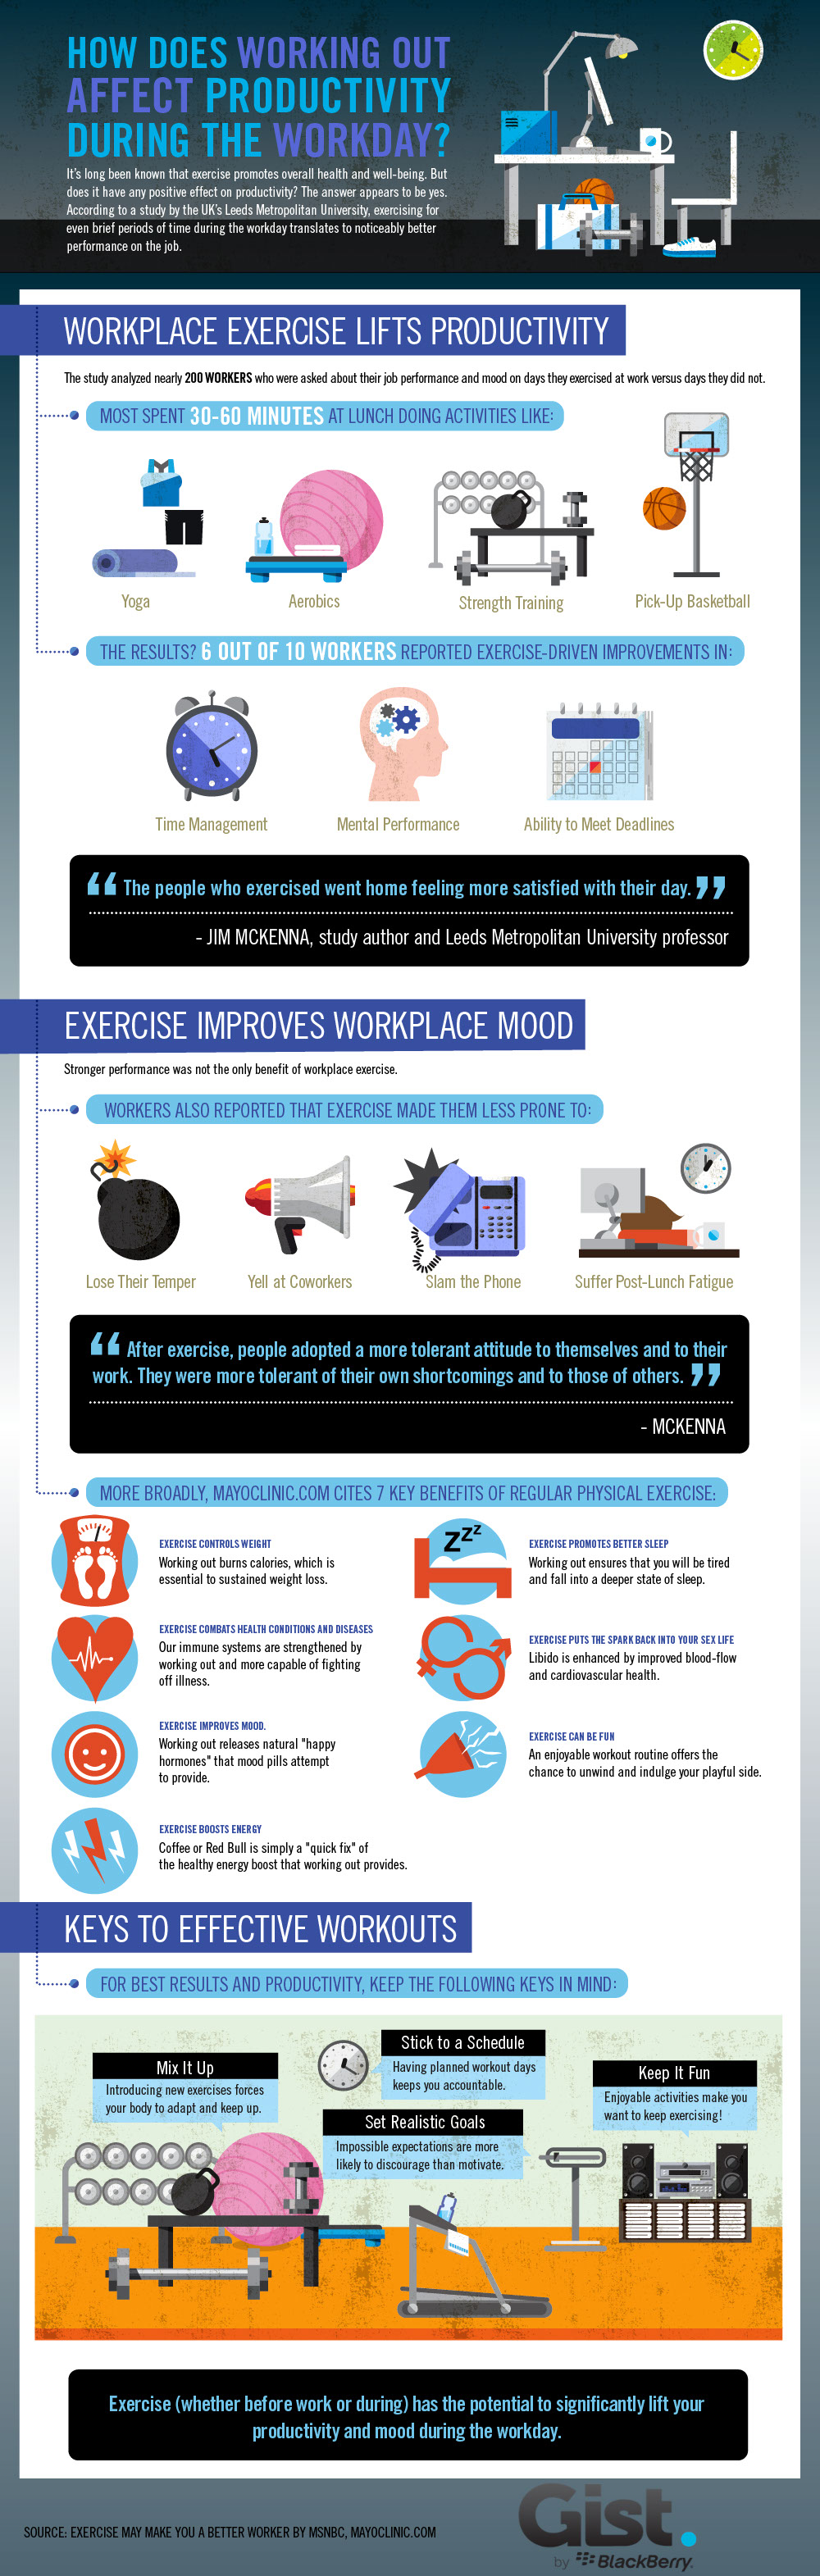 Workout & Work Productivity-infographic